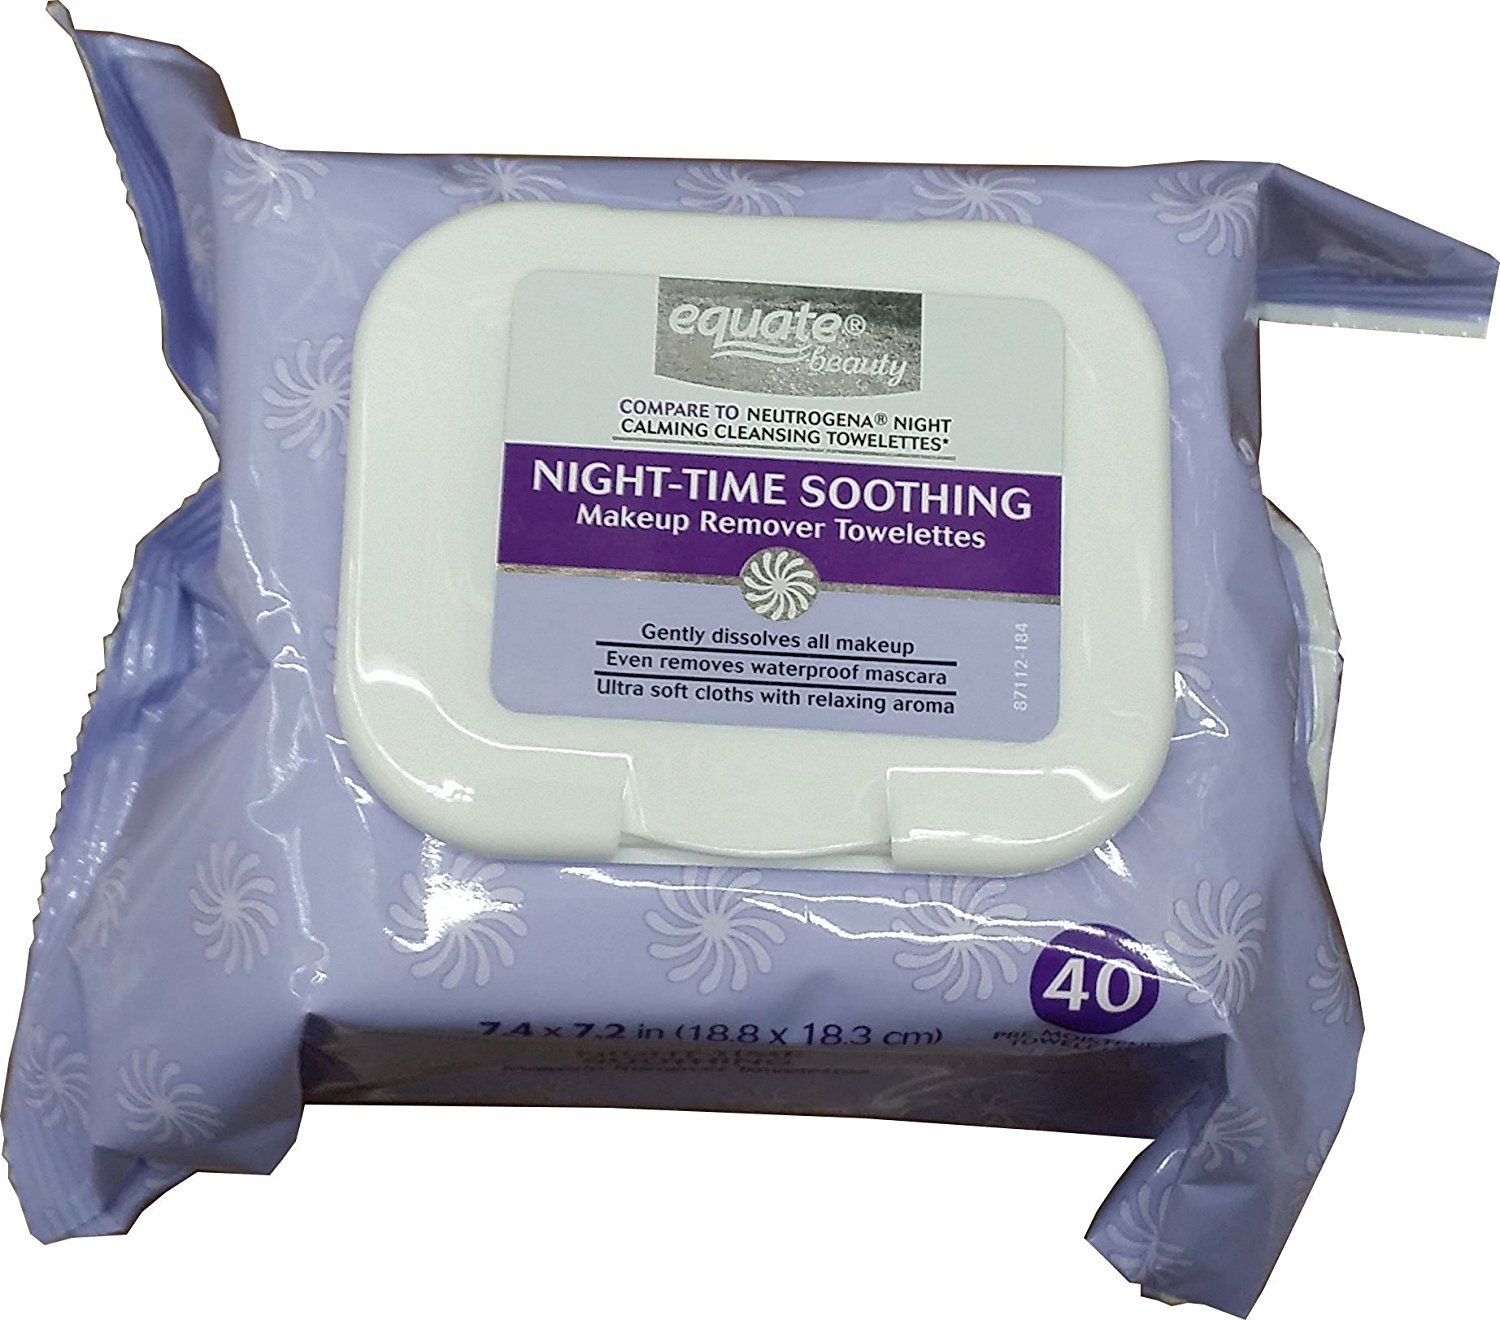 Equate Beauty Night,Time Soothing Makeup Remover Towelettes, 40 sheets